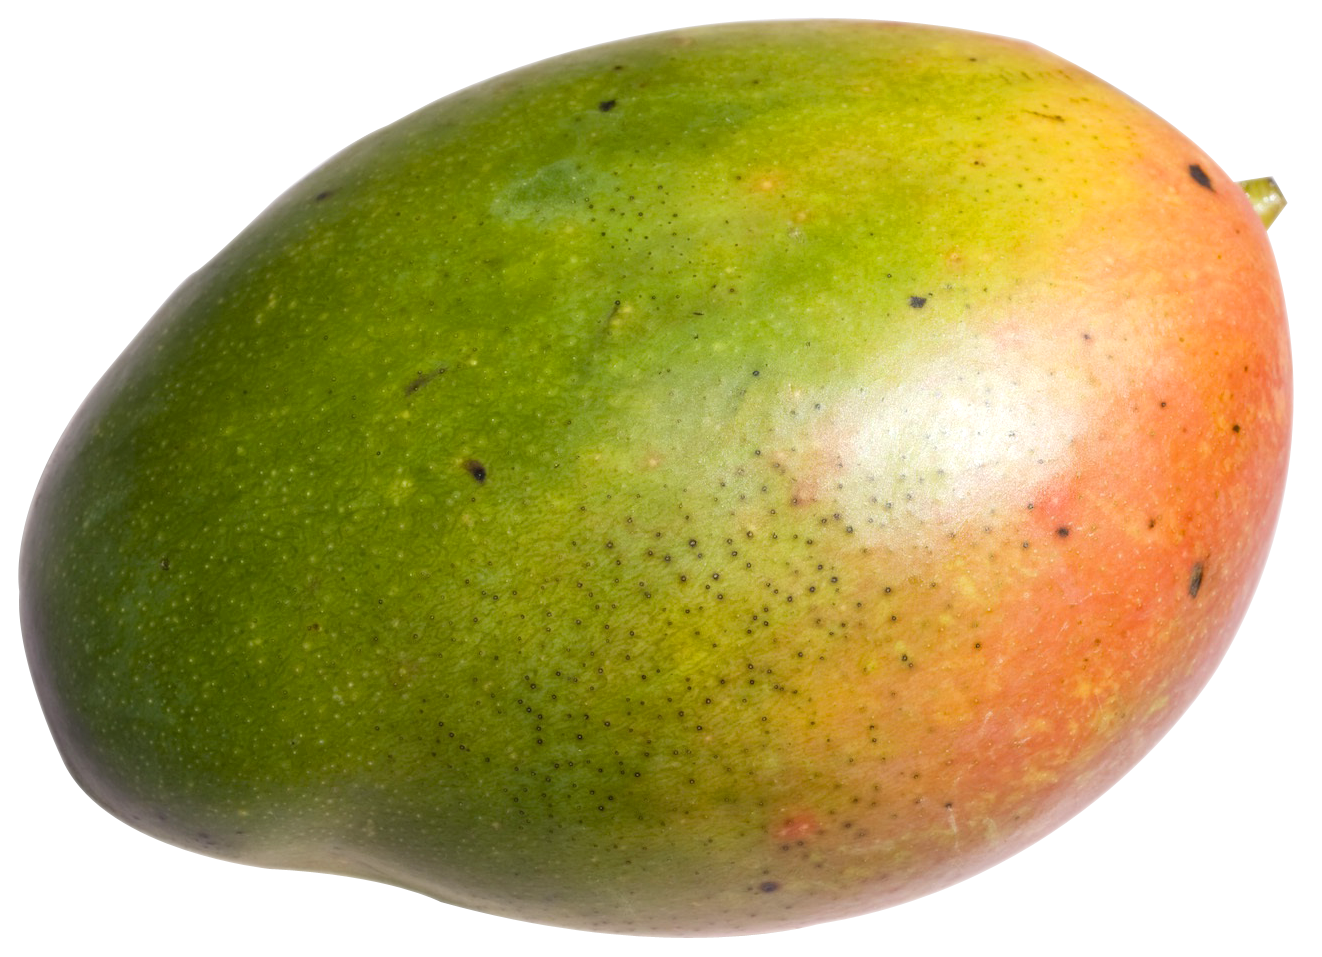 Png Of Mango - Mango PNG Transparent Free Images   PNG Only